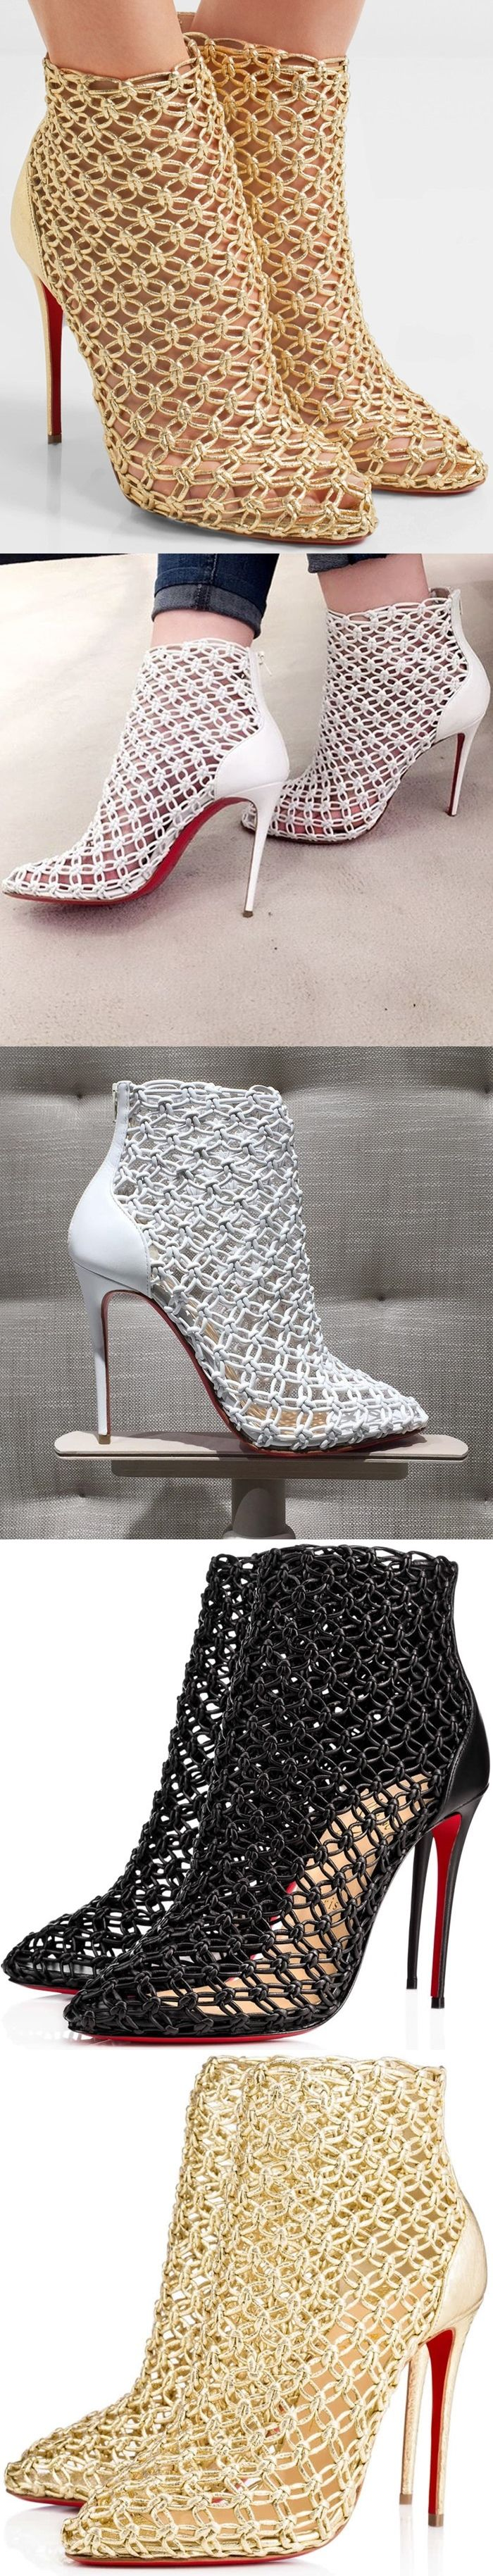 Christian Louboutin S Intricately Knotted Andaloulou Ankle Boots